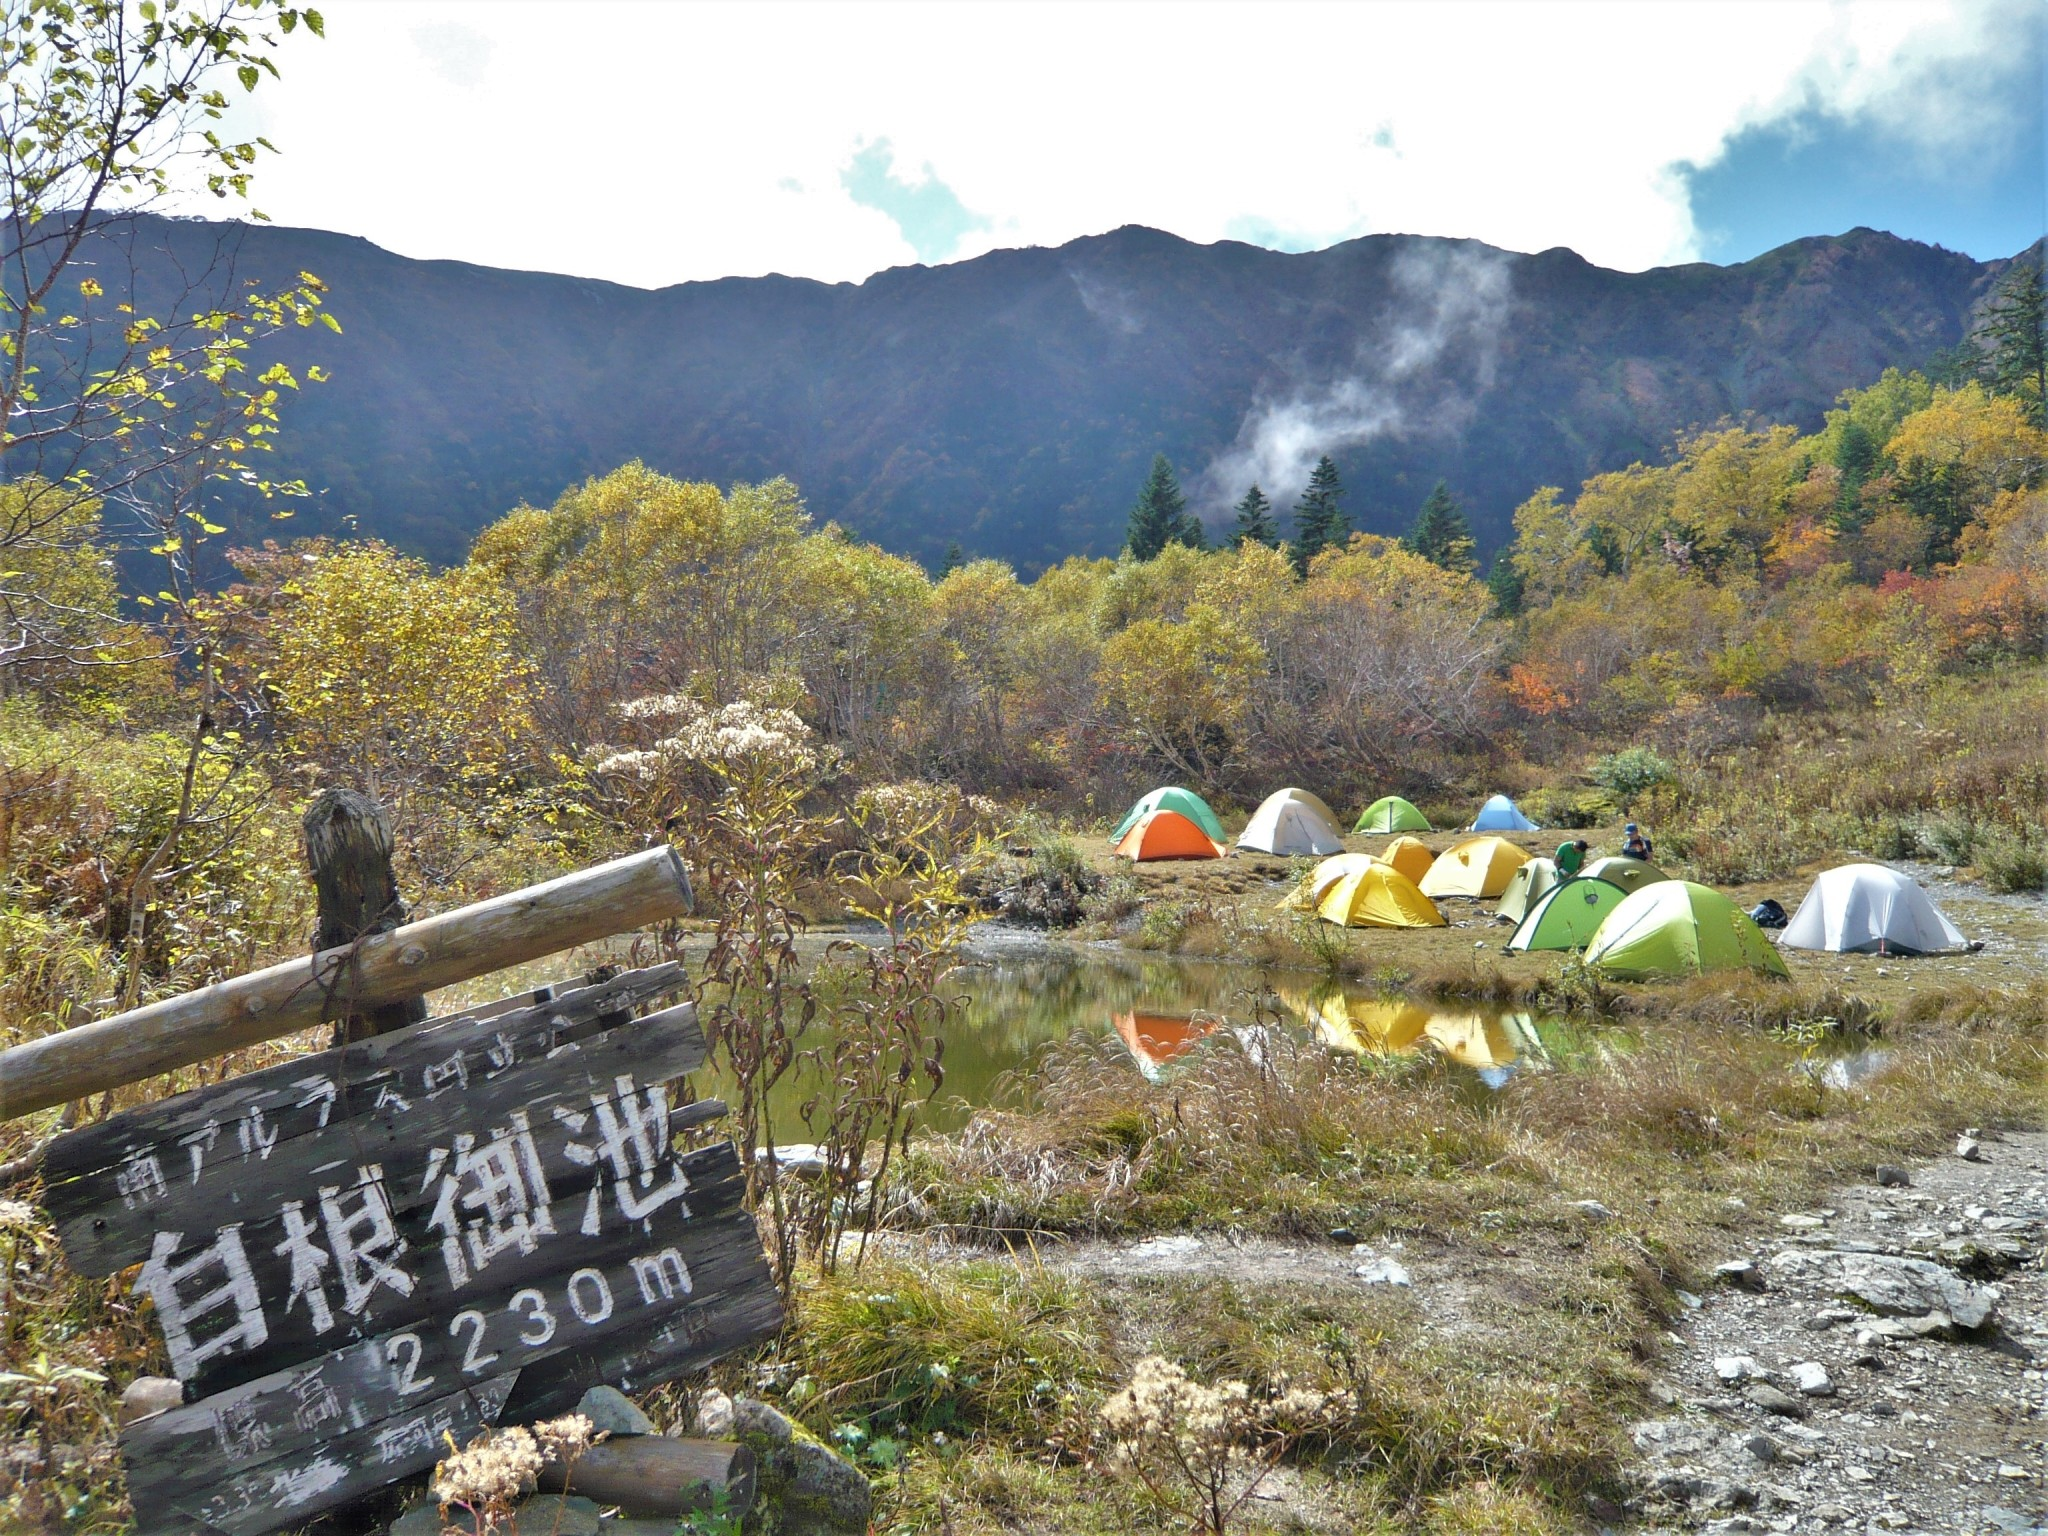 Colourful tents next to a calm pond surrounded by trees and mountains at an idyllic campsite in the Japan Alps.